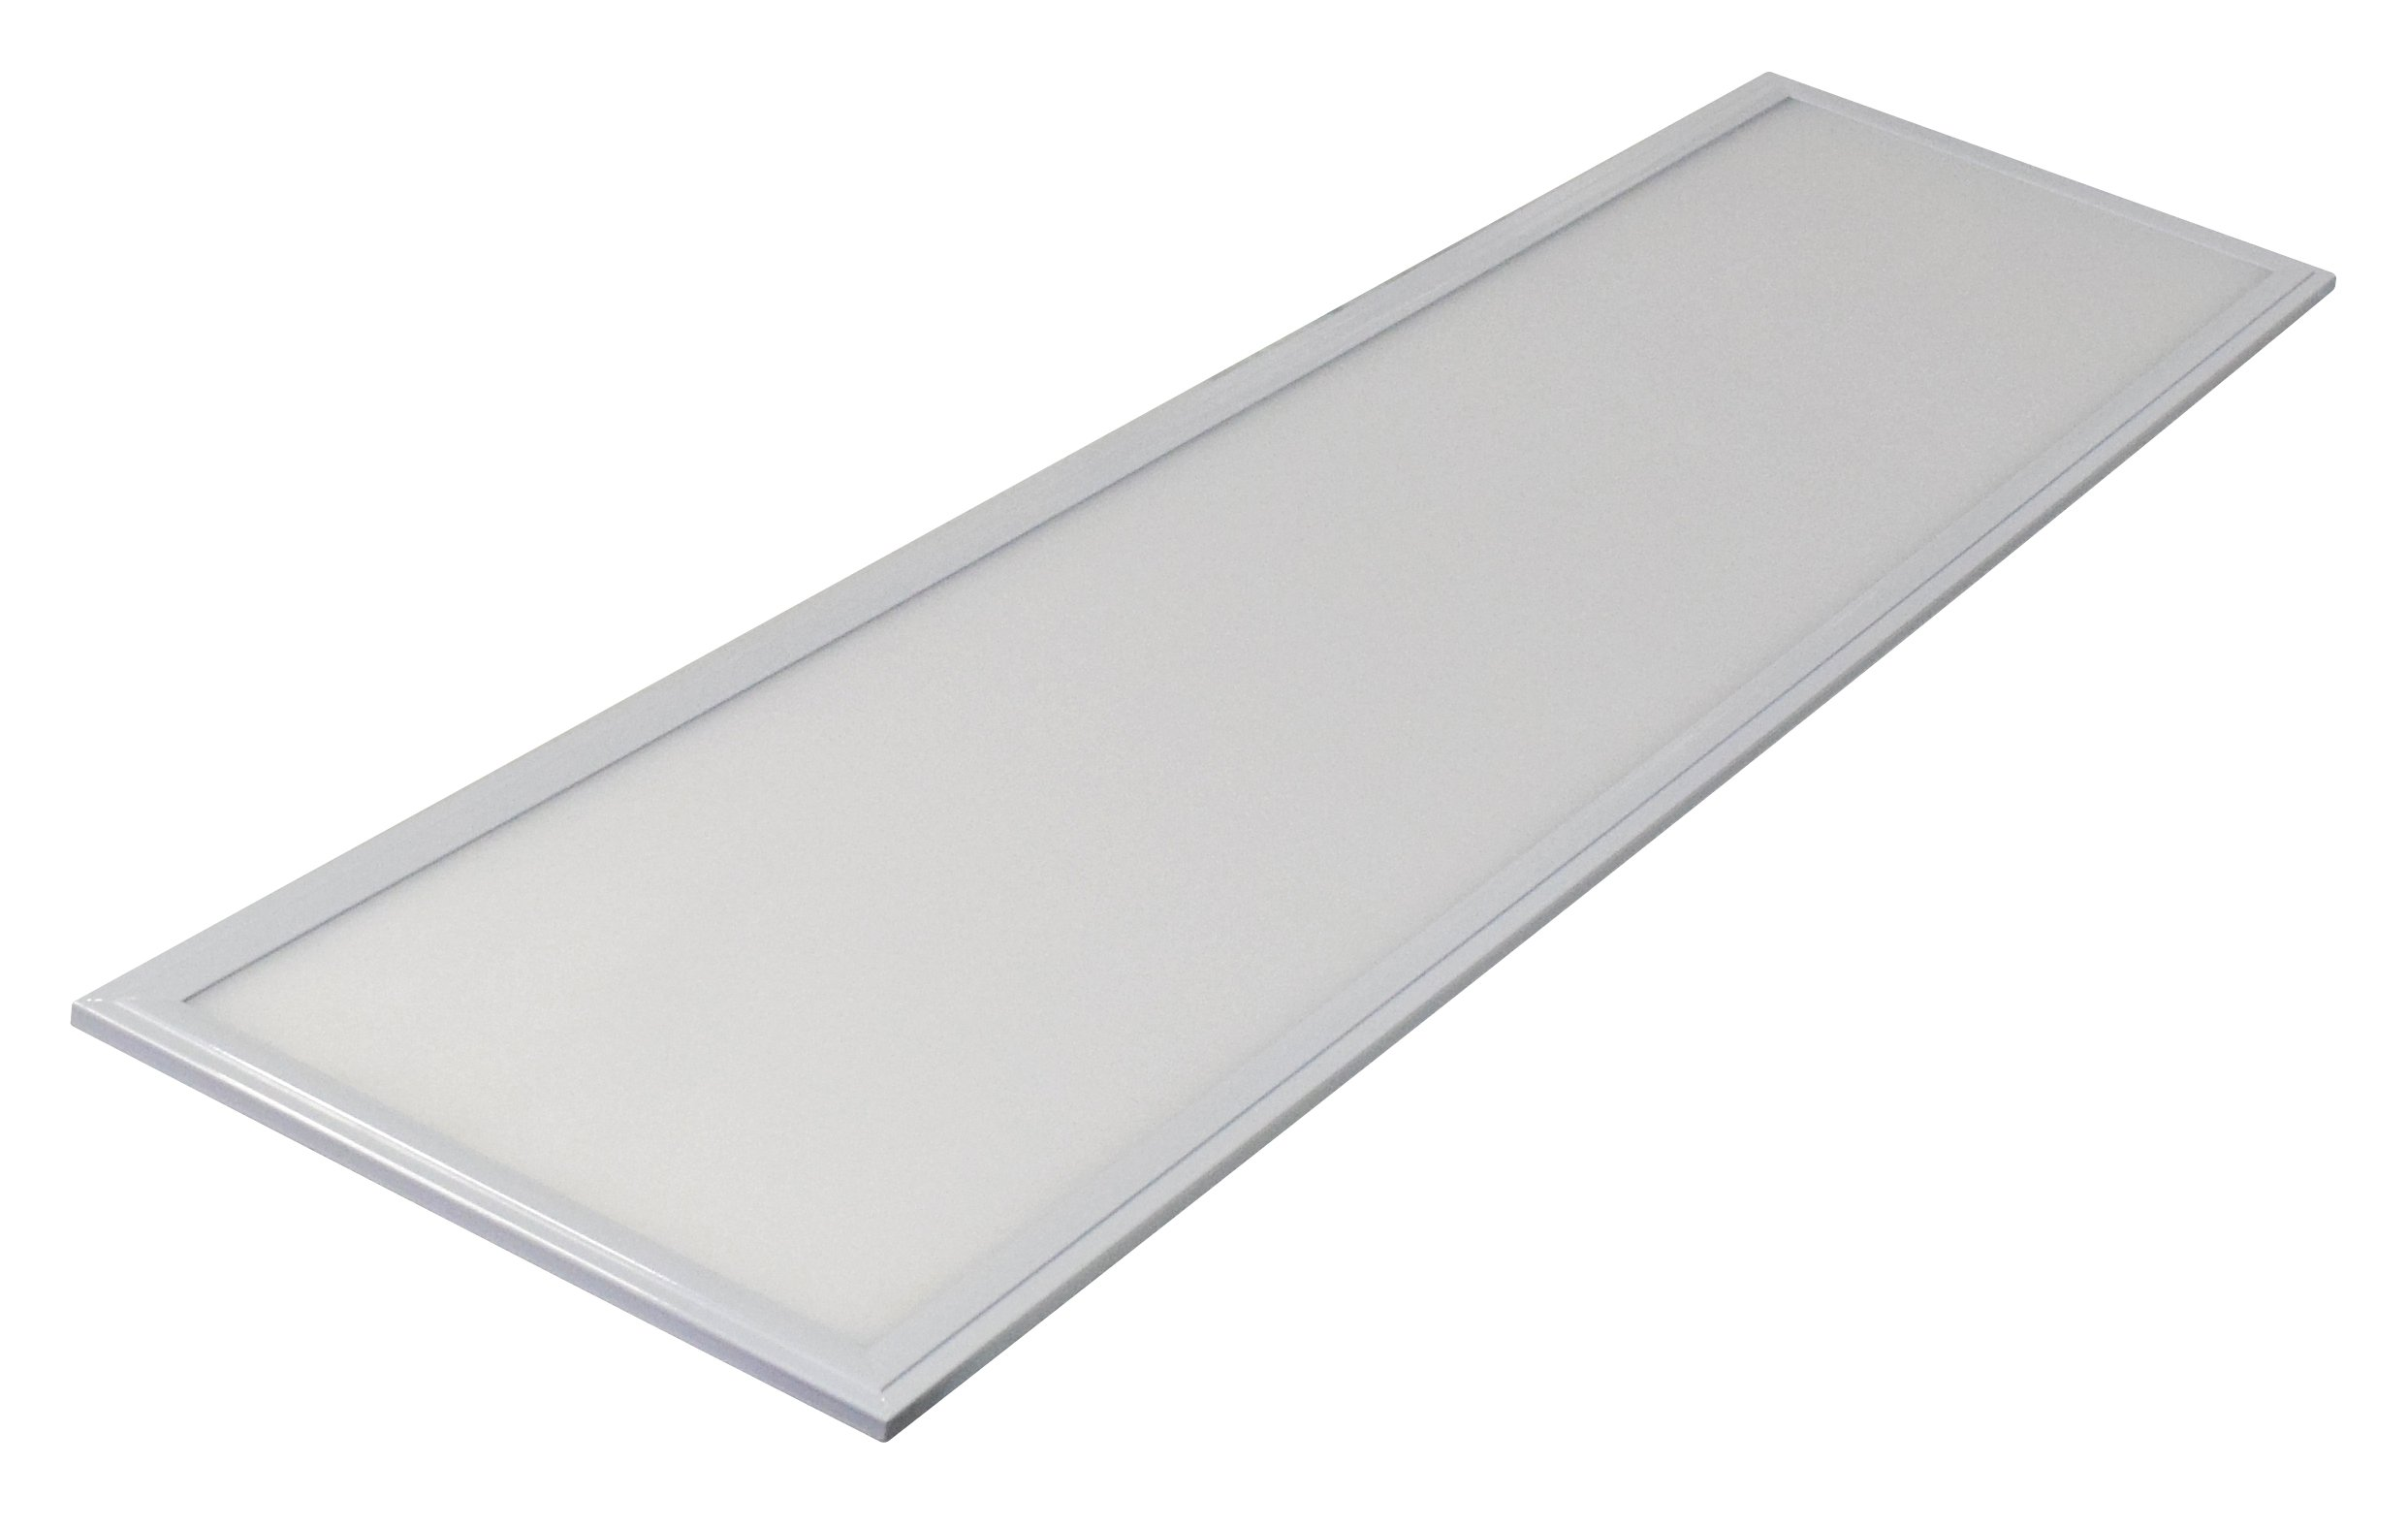 1x4 Ultra-Thin Edge-Lit Dimmable LED Flat Panel Light - 35 Watt - 3500K - 4,616 Lumens - Save on Energy Costs - DLC - Perfect for Professional or Residential Needs - 5 YR Warranty